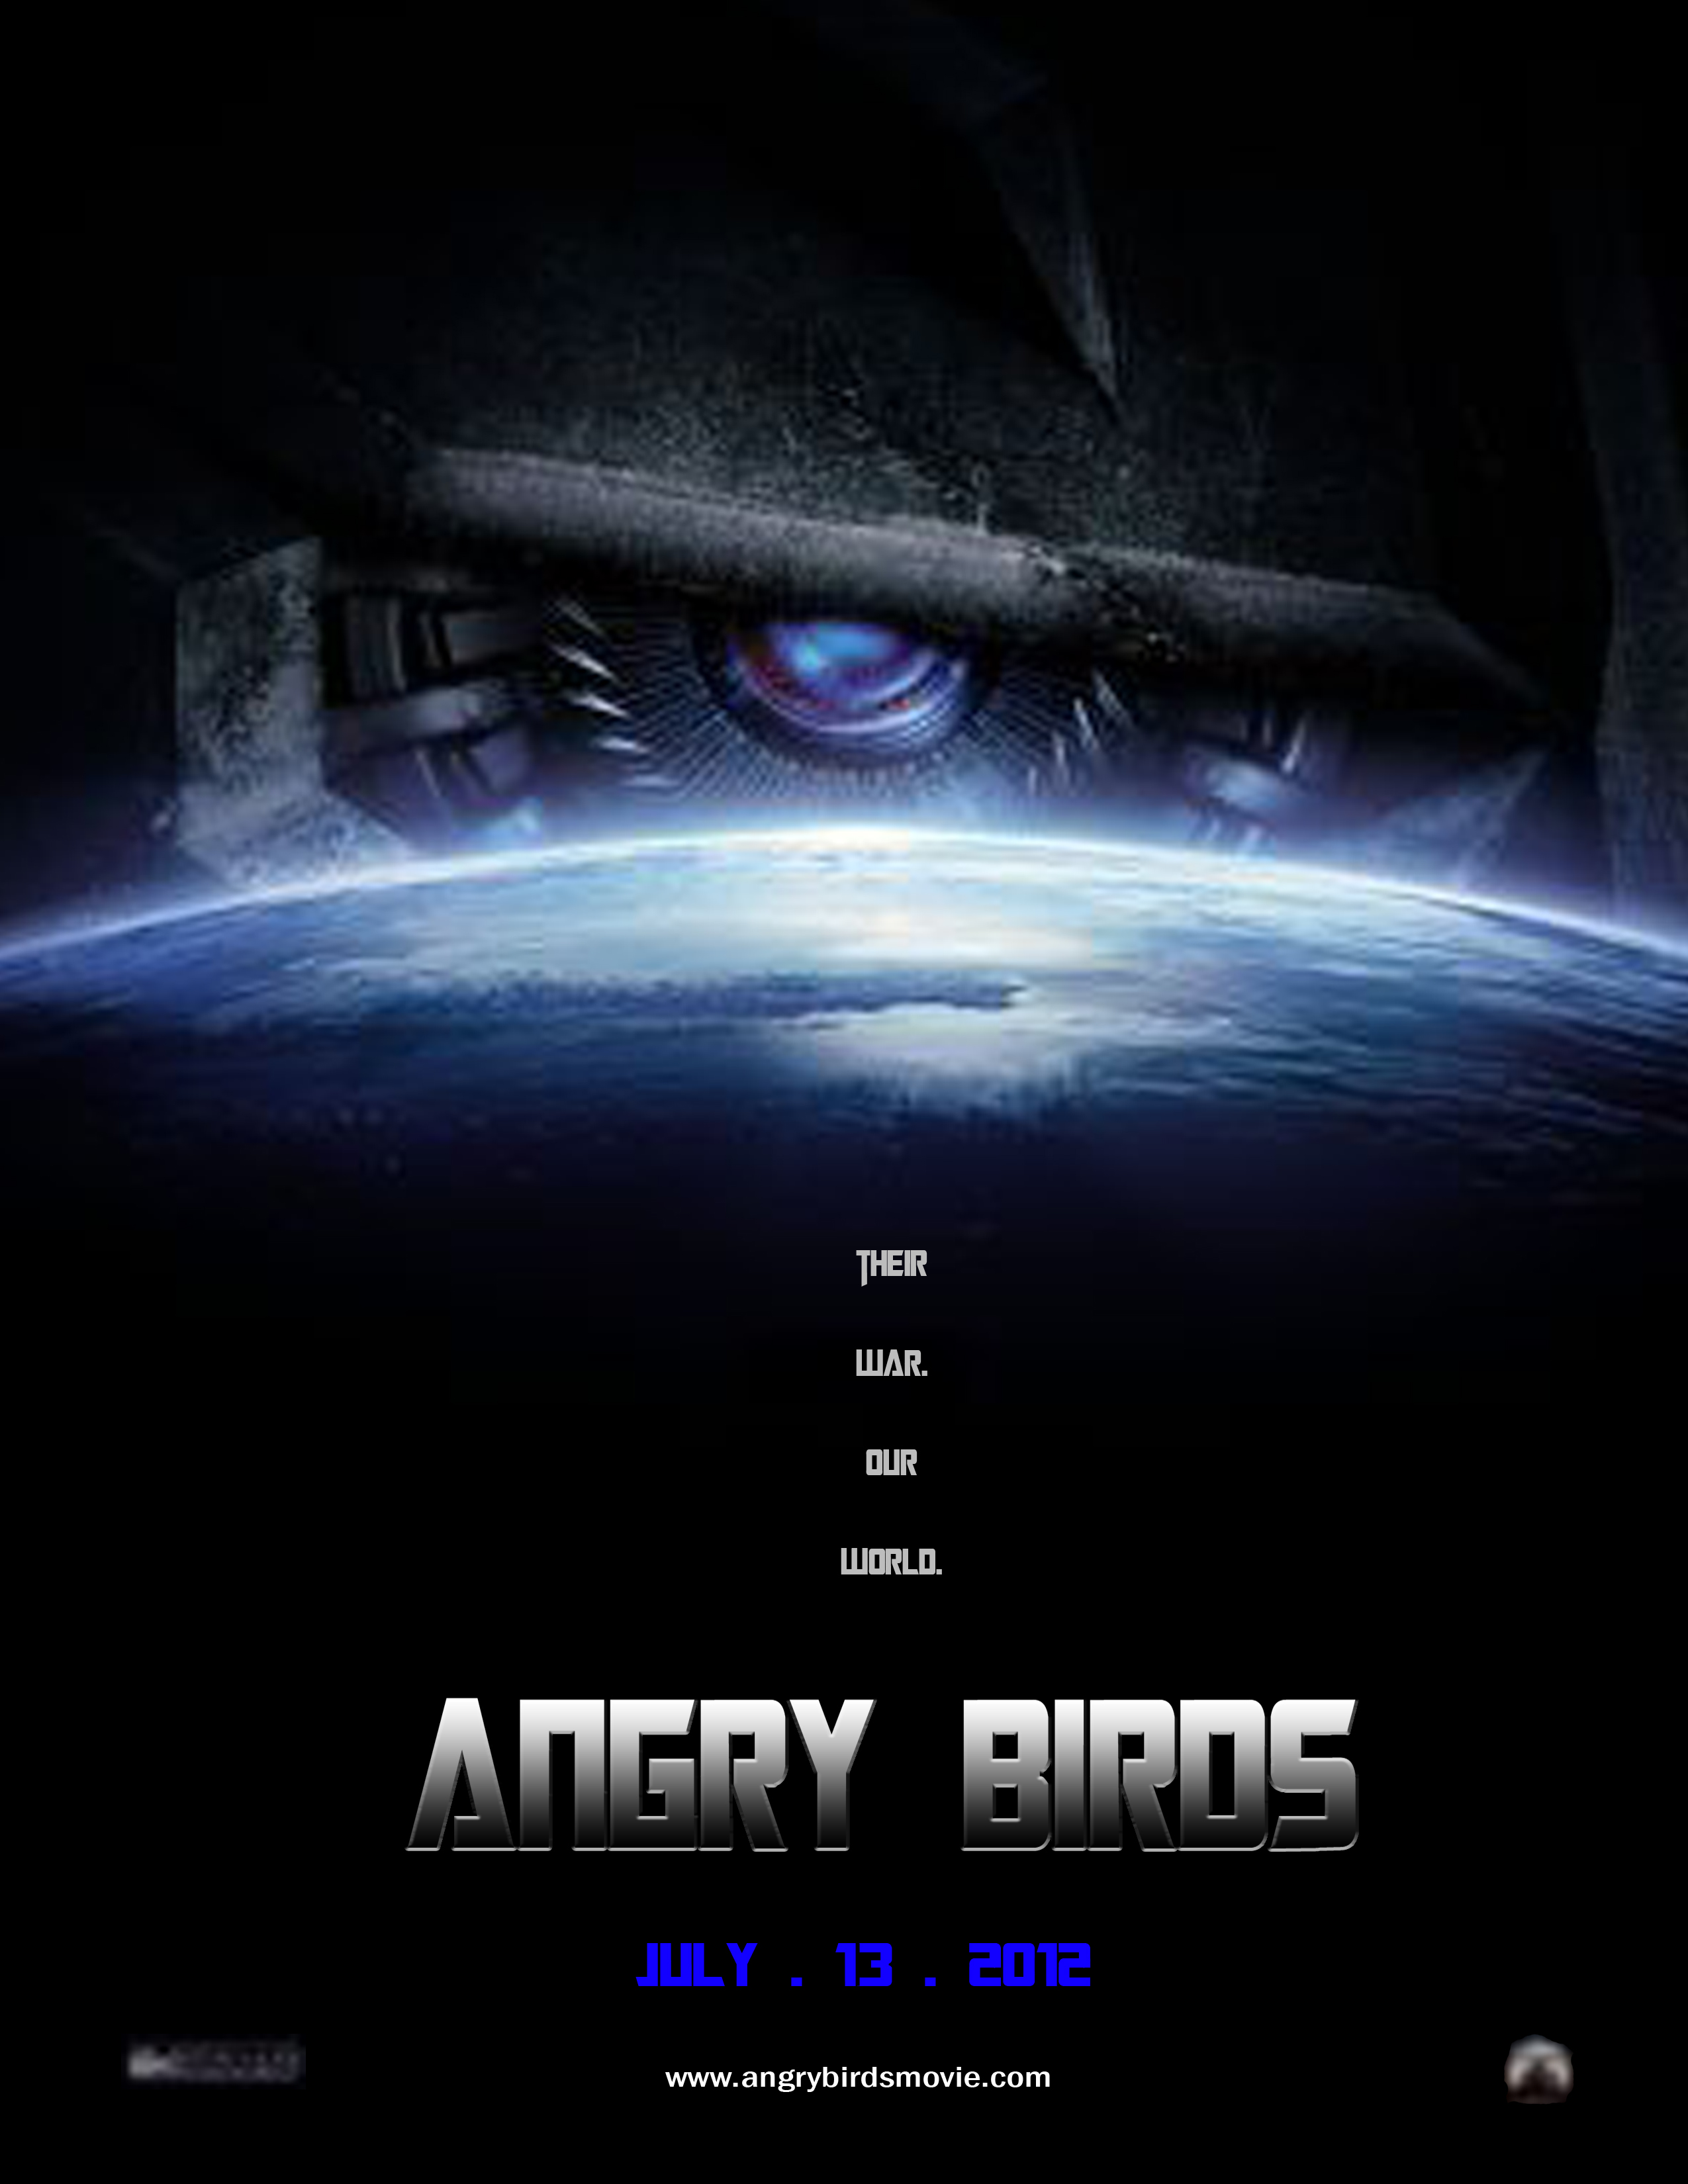 Image angry birds 2012 movie poster 1 angry birds wiki